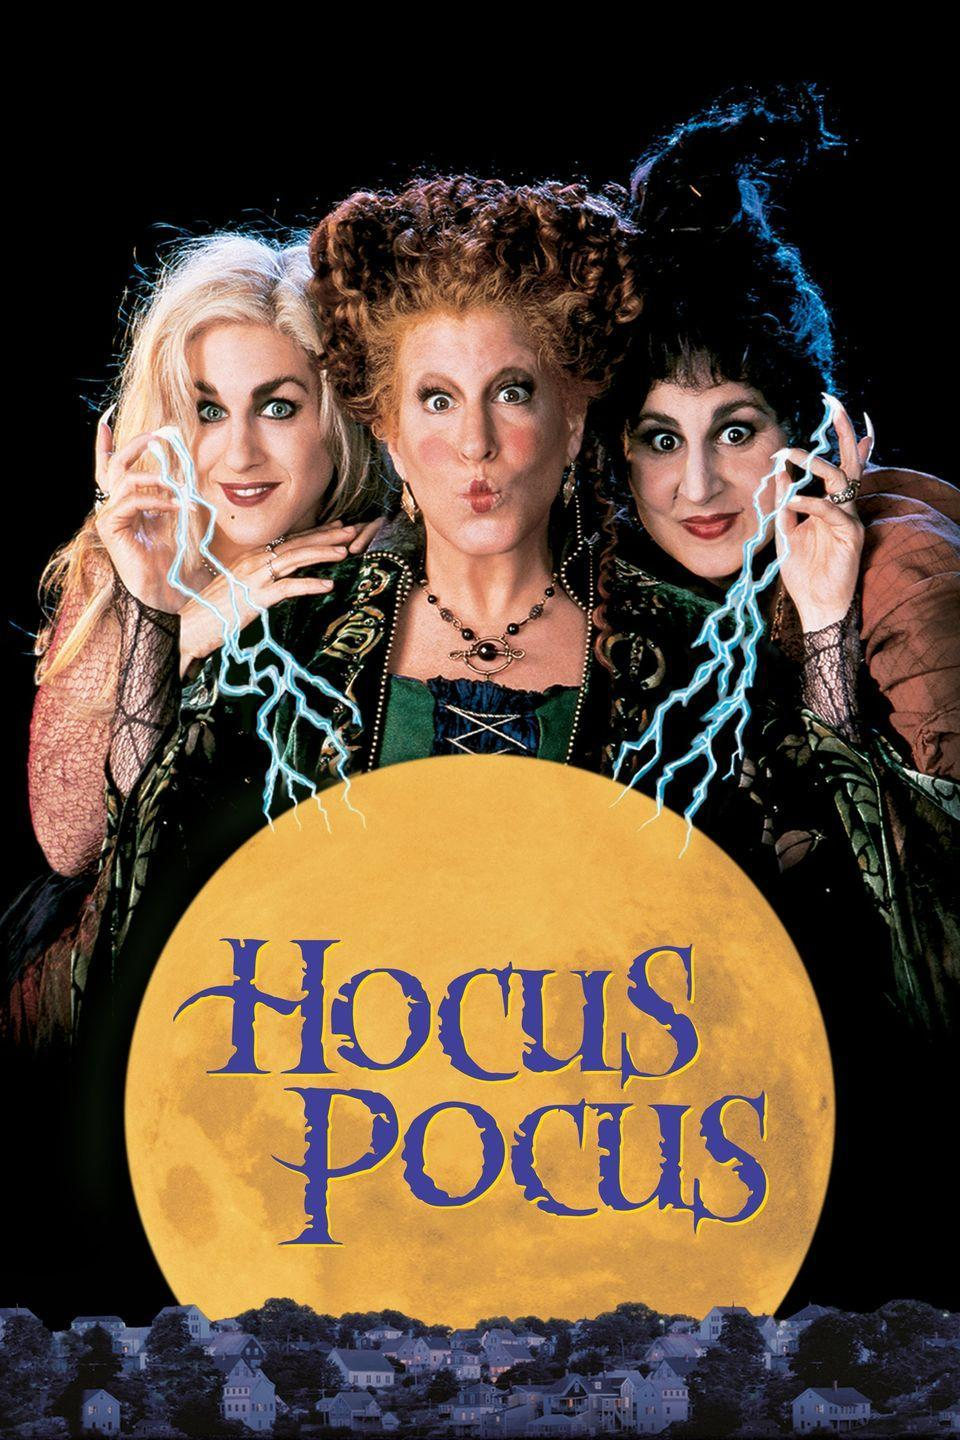 """<p>Three-hundred years after being hung at the Salem Witch Trails, the Sanderson sisters return when three kids accidentally resurrect them. Laugh along as the three kids try to stop these witchy sisters from taking over Salem and and killing children in order to stay immortal. </p><p><a class=""""link rapid-noclick-resp"""" href=""""https://go.redirectingat.com?id=74968X1596630&url=https%3A%2F%2Fwww.disneyplus.com%2Fmovies%2Fhocus-pocus%2F2iCcYcGrx7qD&sref=https%3A%2F%2Fwww.seventeen.com%2Fcelebrity%2Fmovies-tv%2Fg29354714%2Fnon-scary-halloween-movies%2F"""" rel=""""nofollow noopener"""" target=""""_blank"""" data-ylk=""""slk:Watch Now"""">Watch Now</a></p>"""